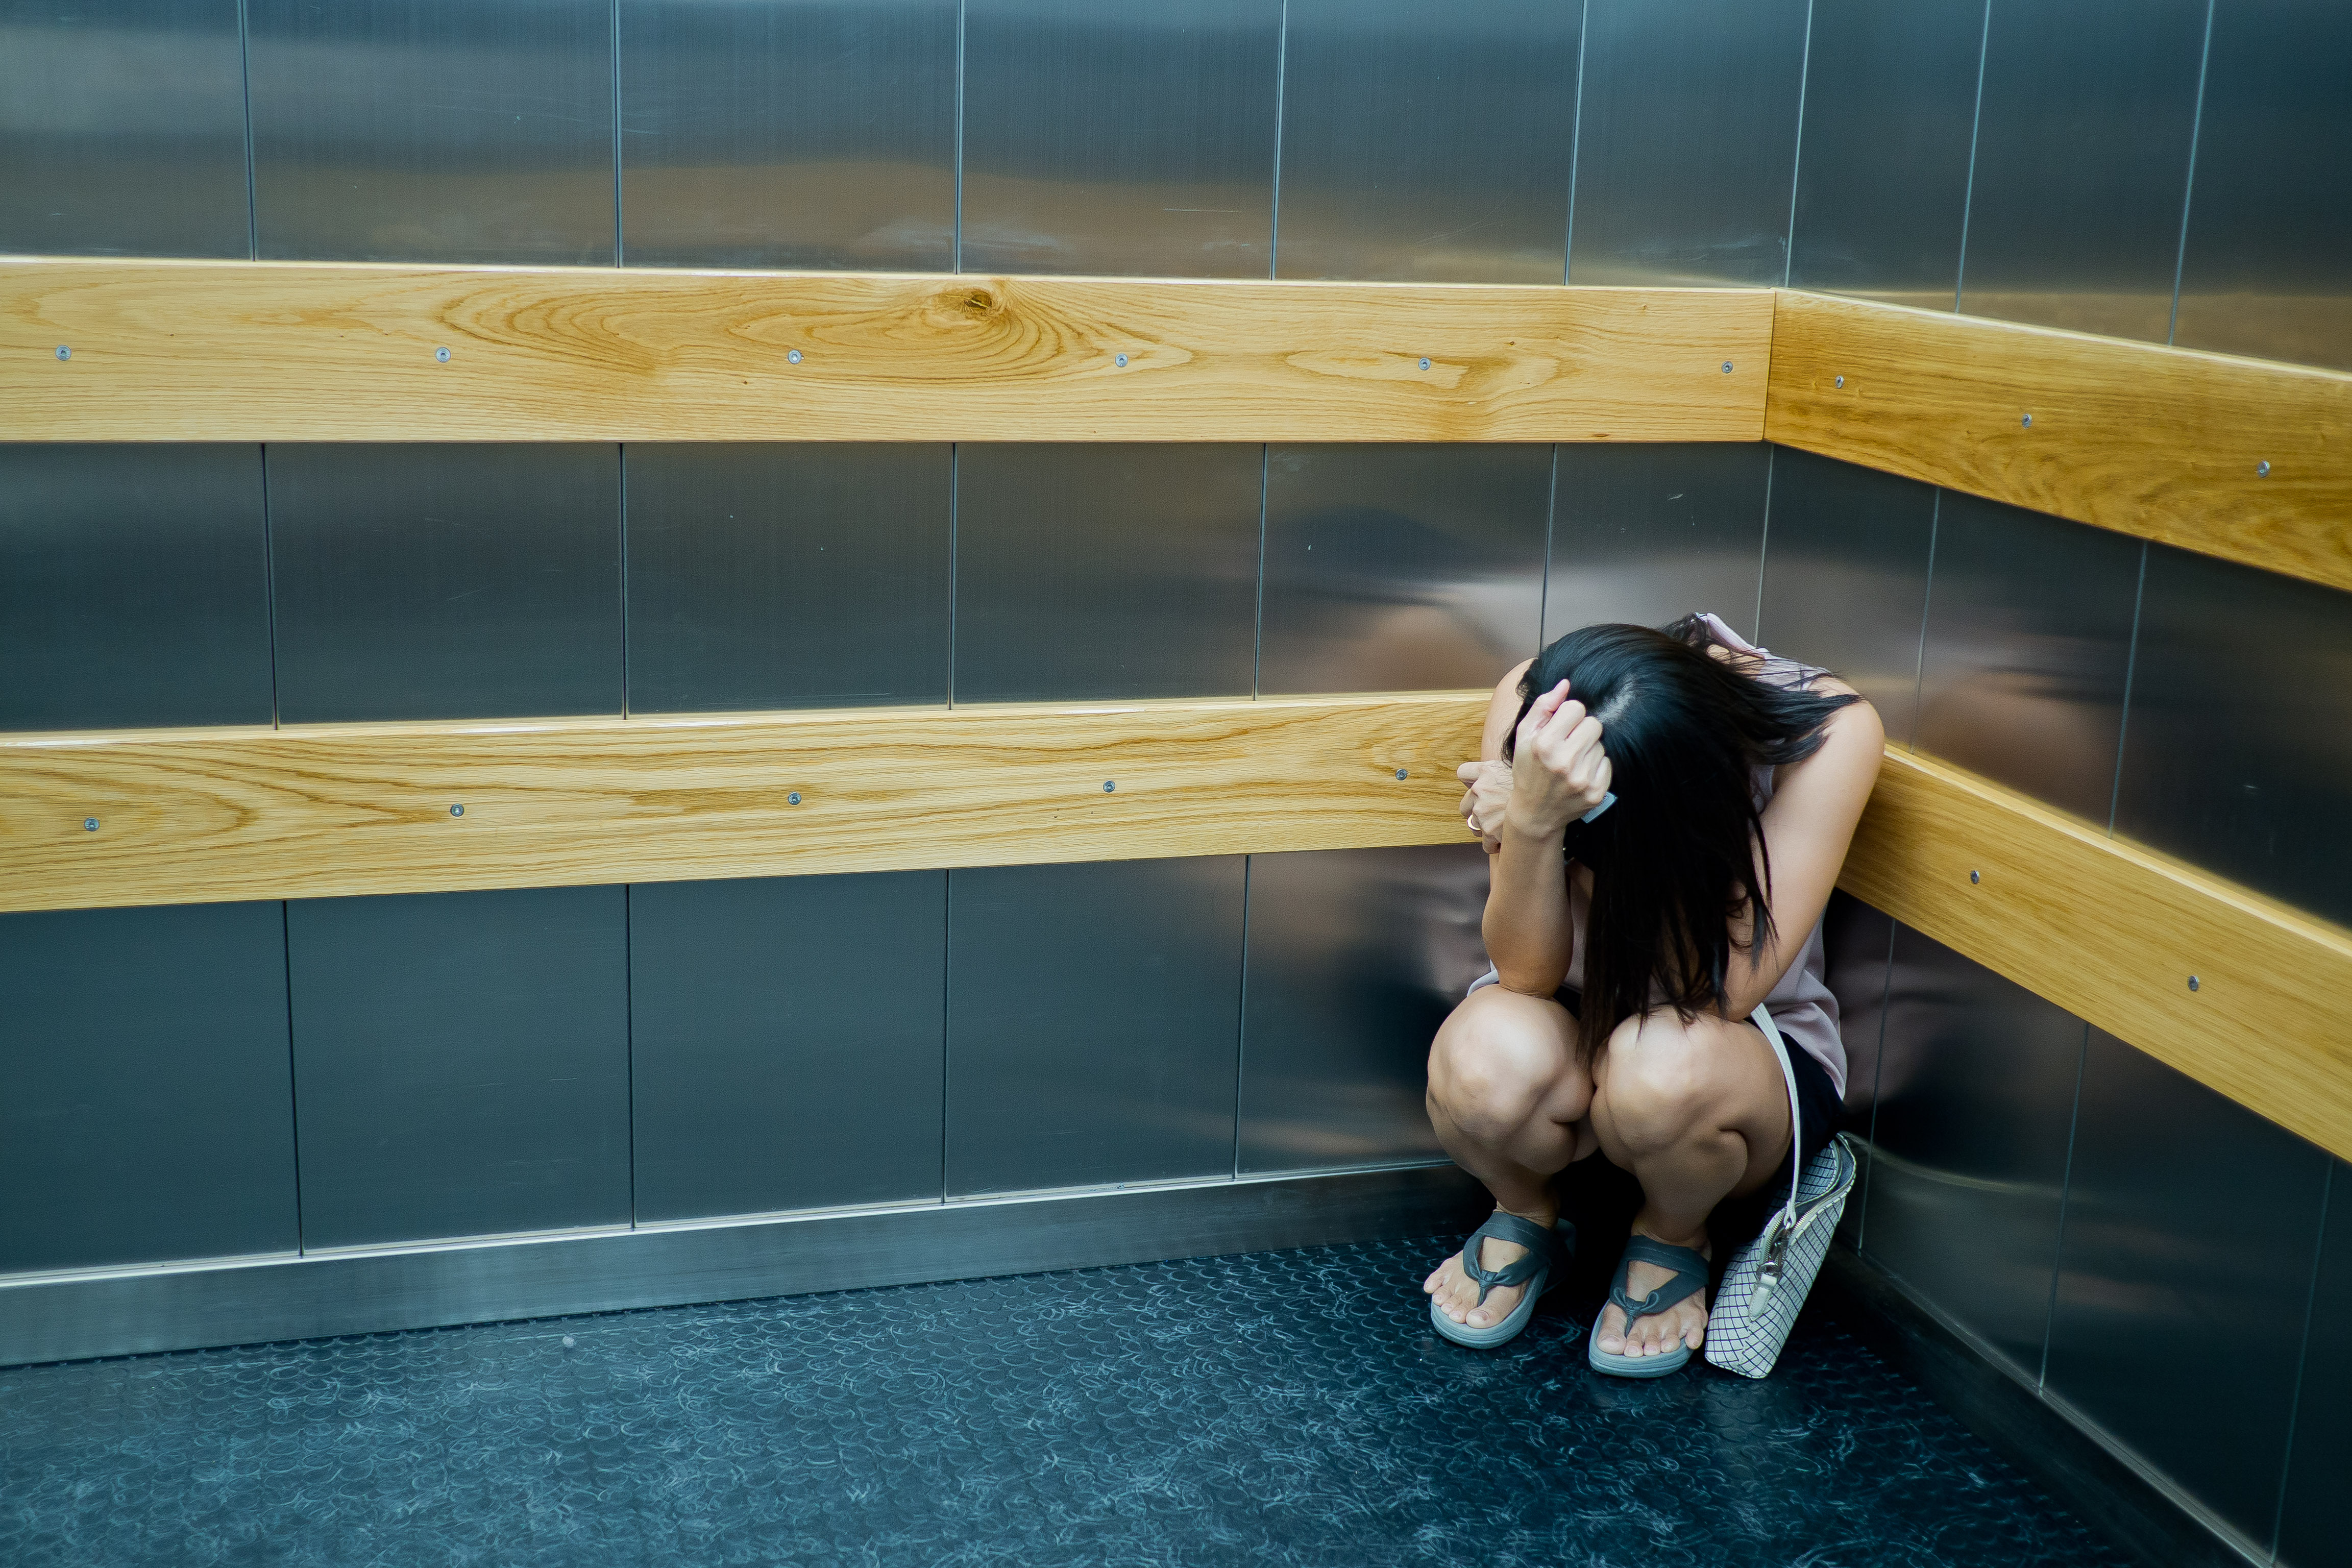 Pictured is a woman stuck in an elevator. SHUTTERSTOCK/suriyachan